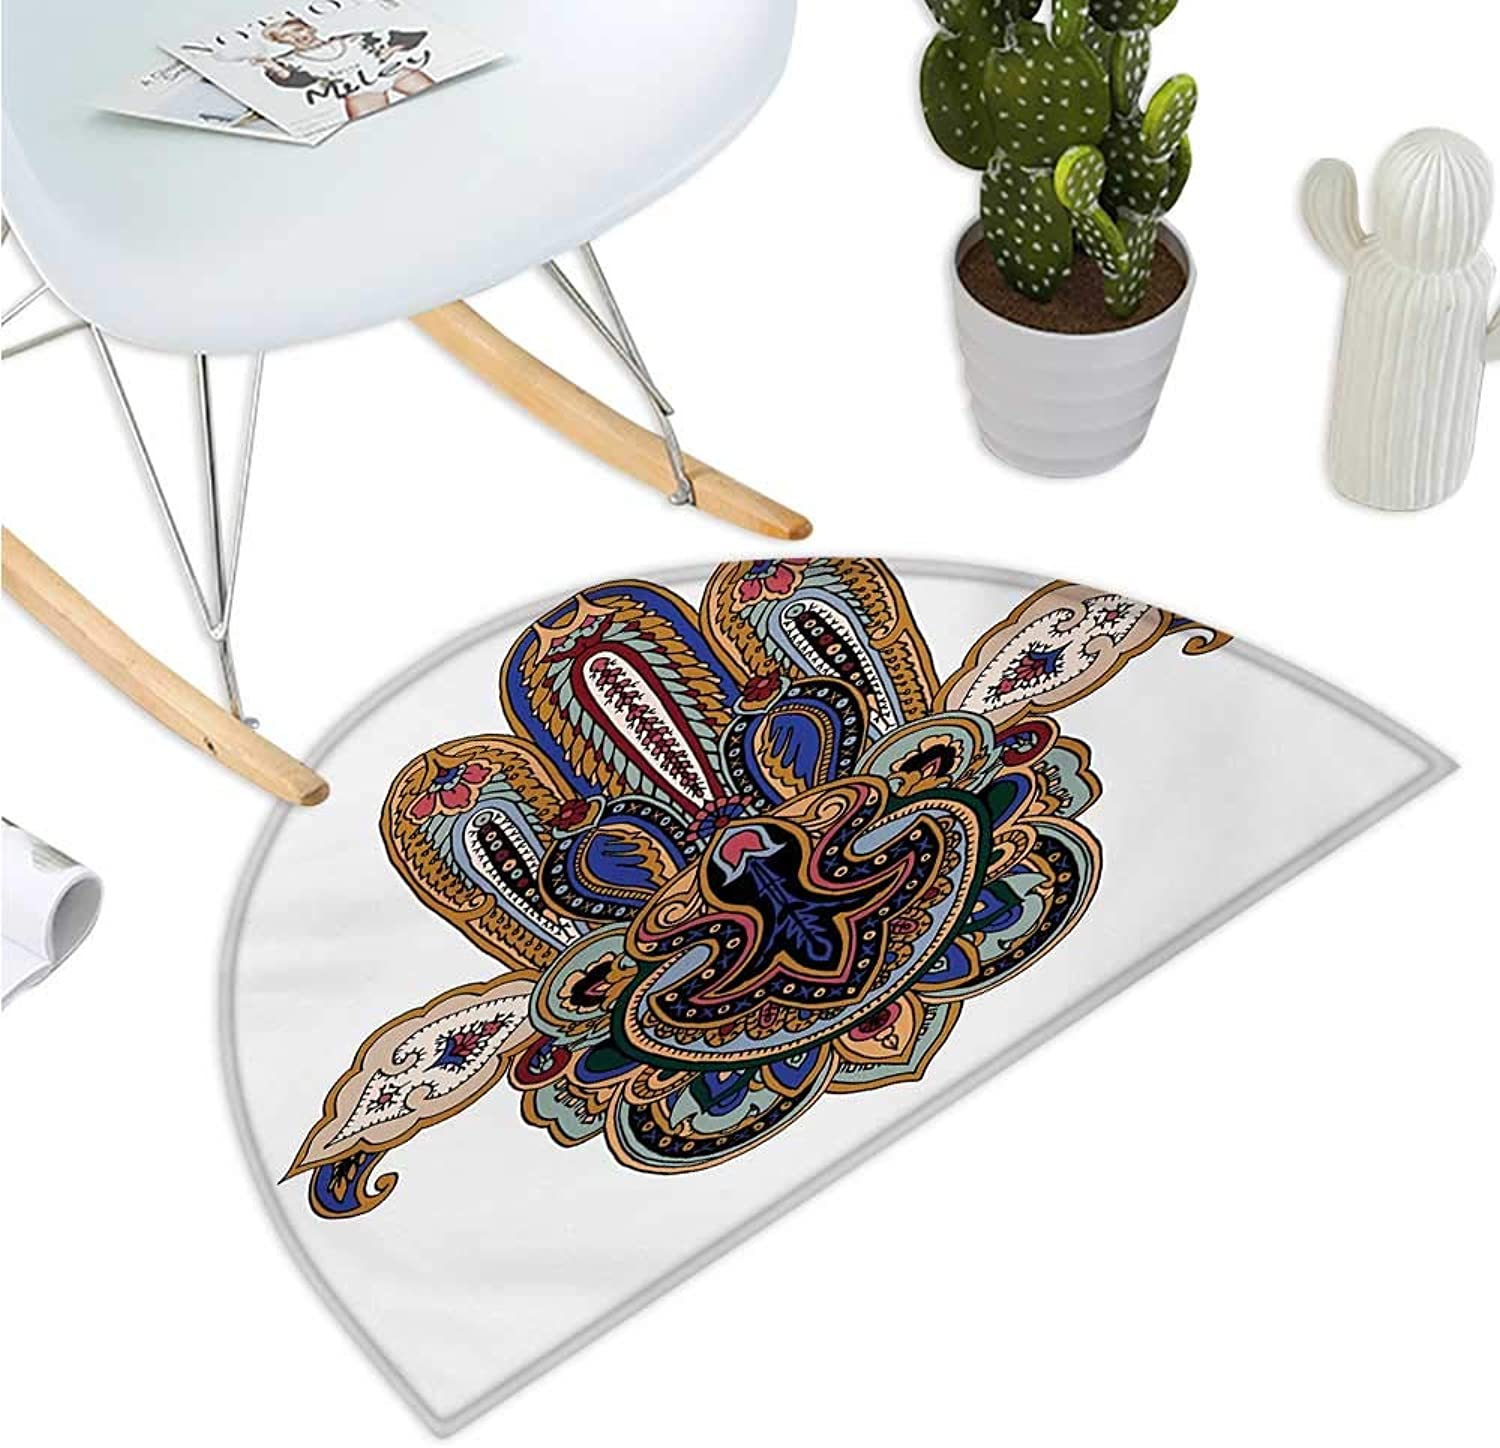 Hamsa Semicircular Cushion Eastern Asian Traditional Symbol Ancient Cultures Amulet Design with Paisley Motifs Entry Door Mat H 47.2  xD 70.8  Multicolor